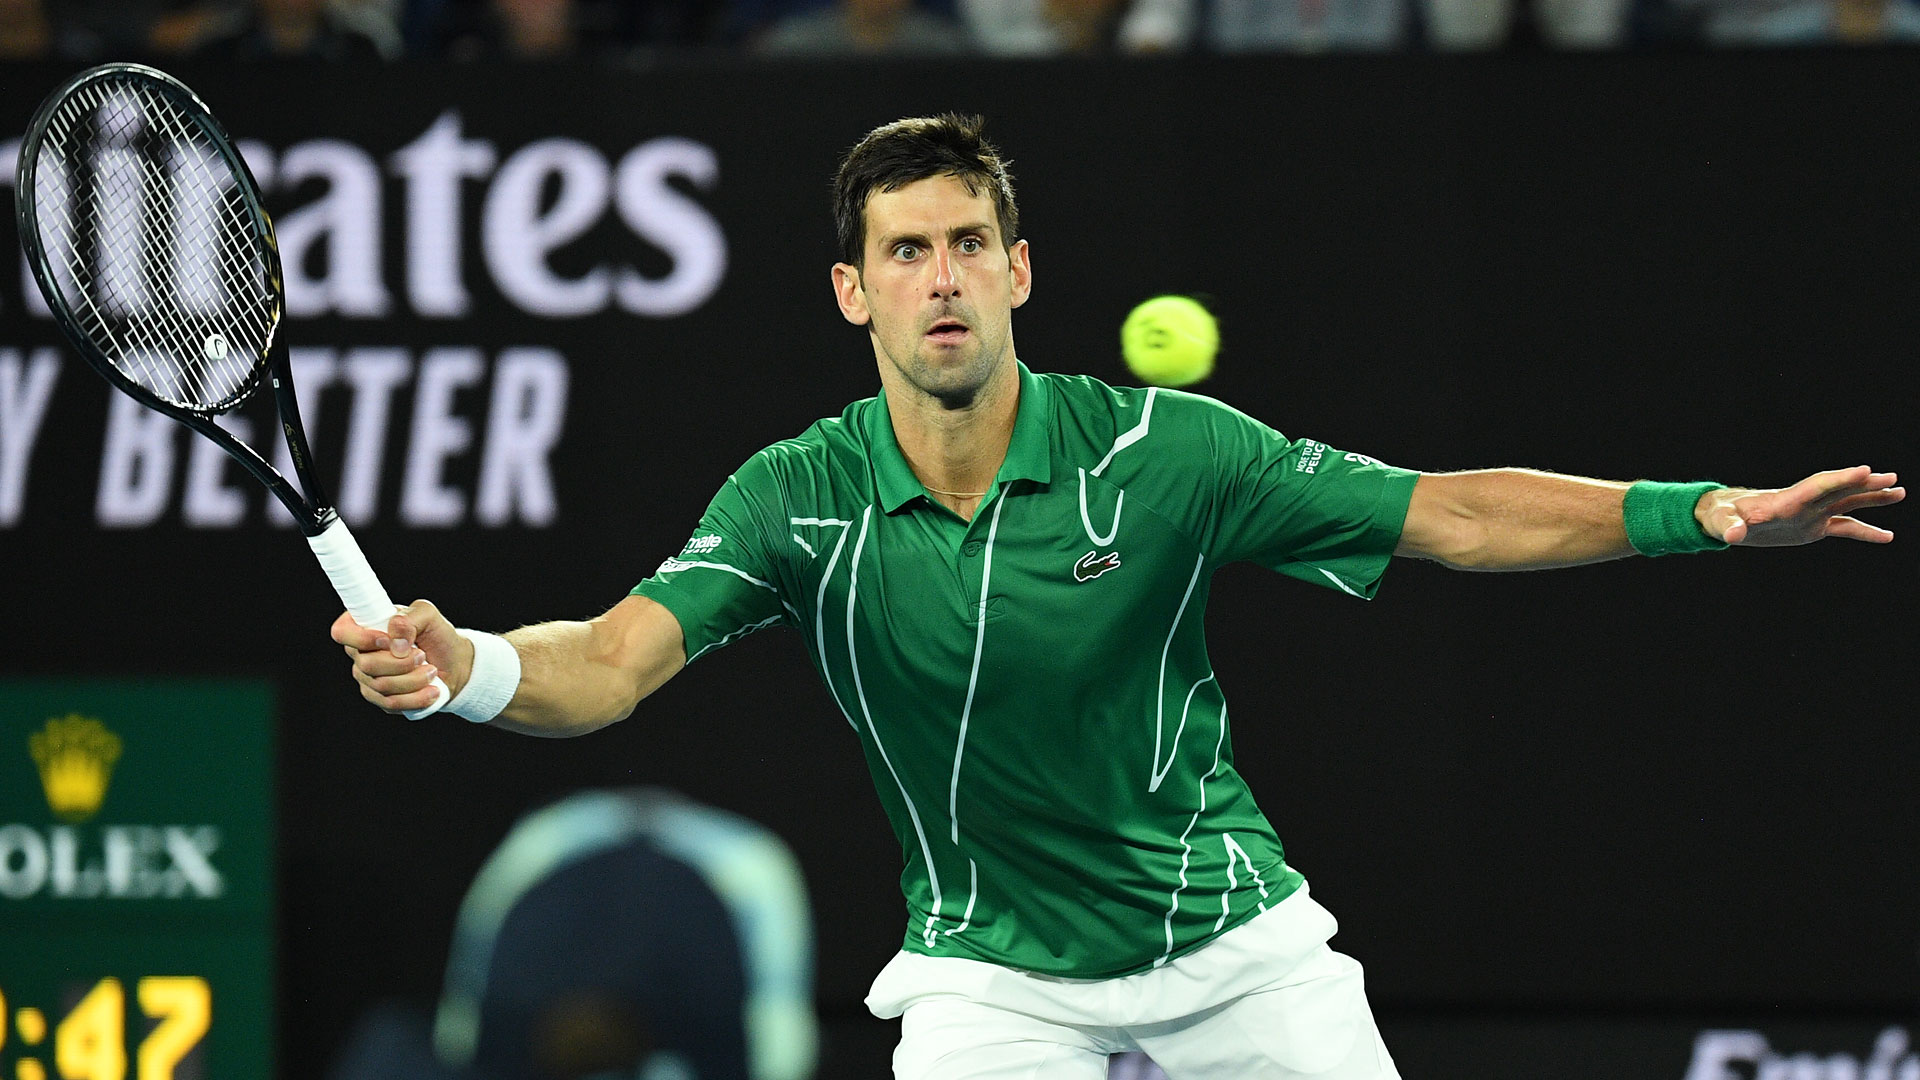 Novak Djokovics Bid Win Eighth Australian Open Return To No 1 1920x1080